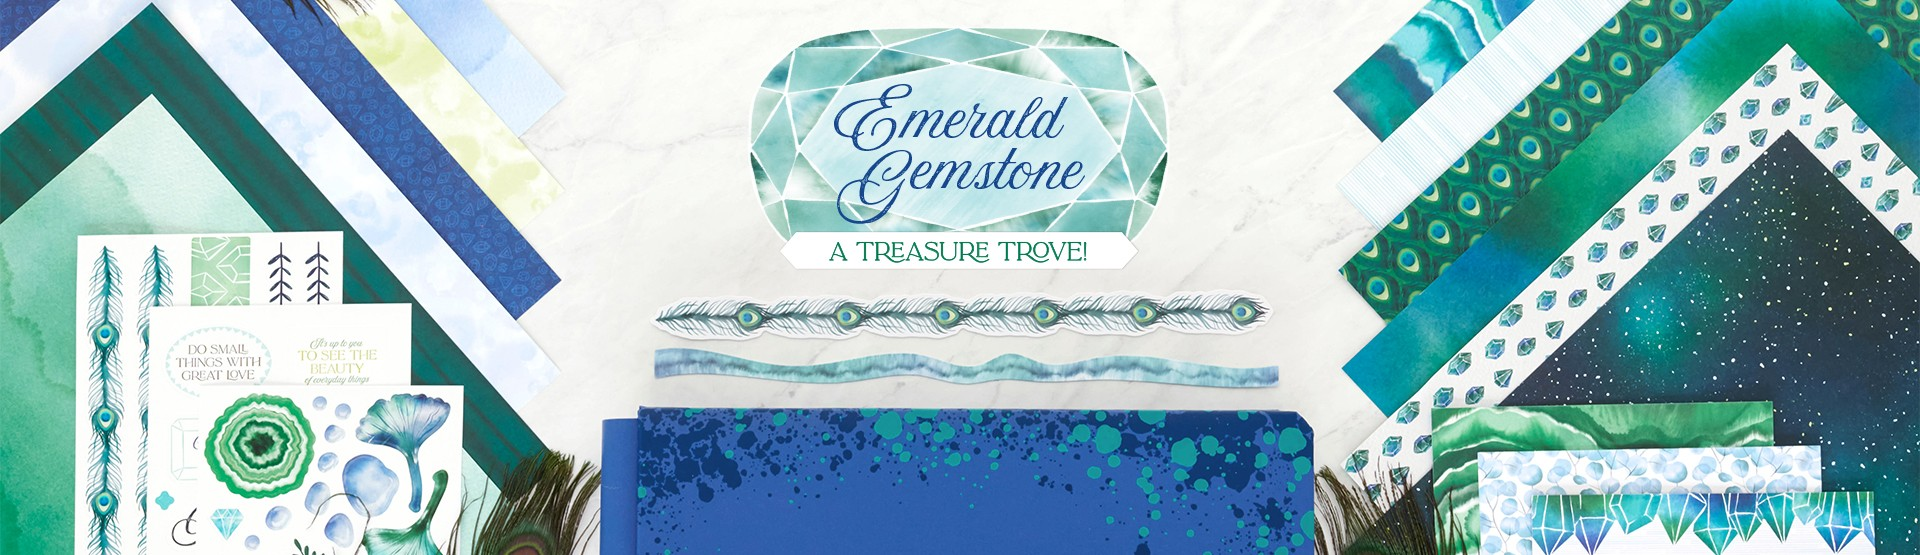 Natural Wonders Scrapbooking Supplies: Emerald Gemstone